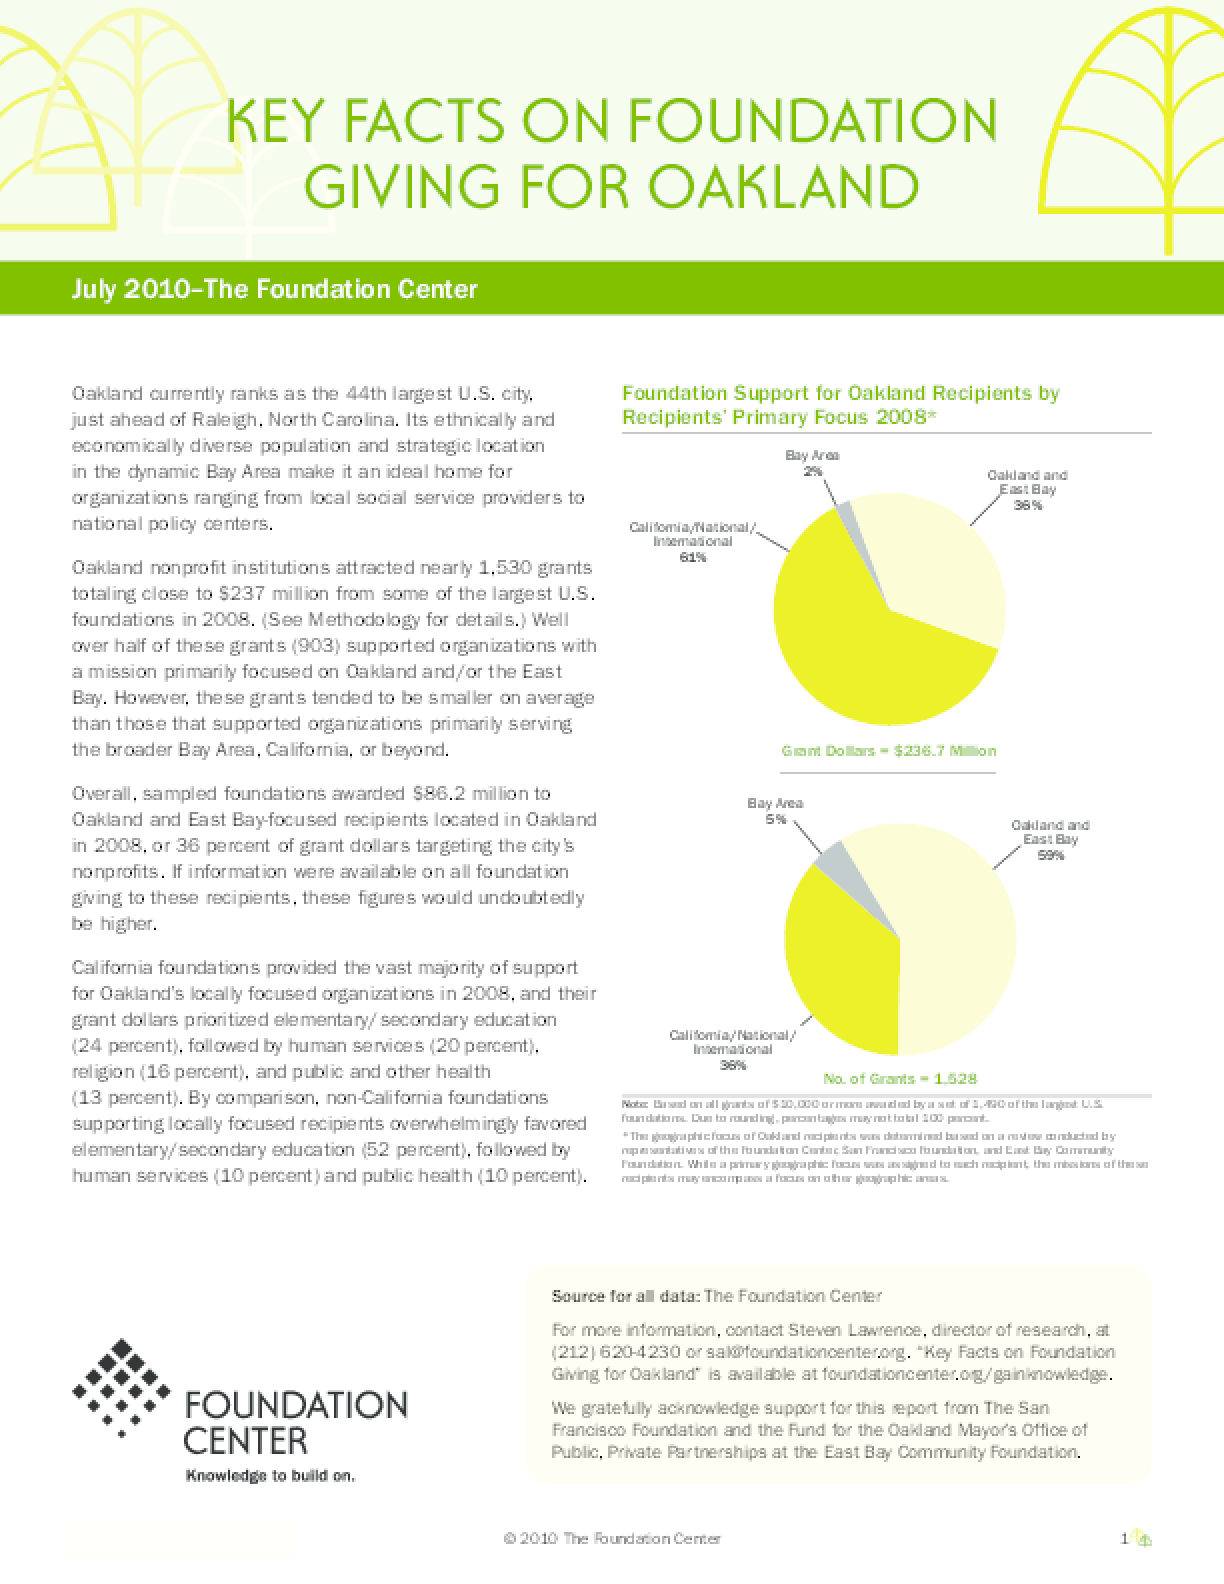 Key Facts on Foundation Giving for Oakland